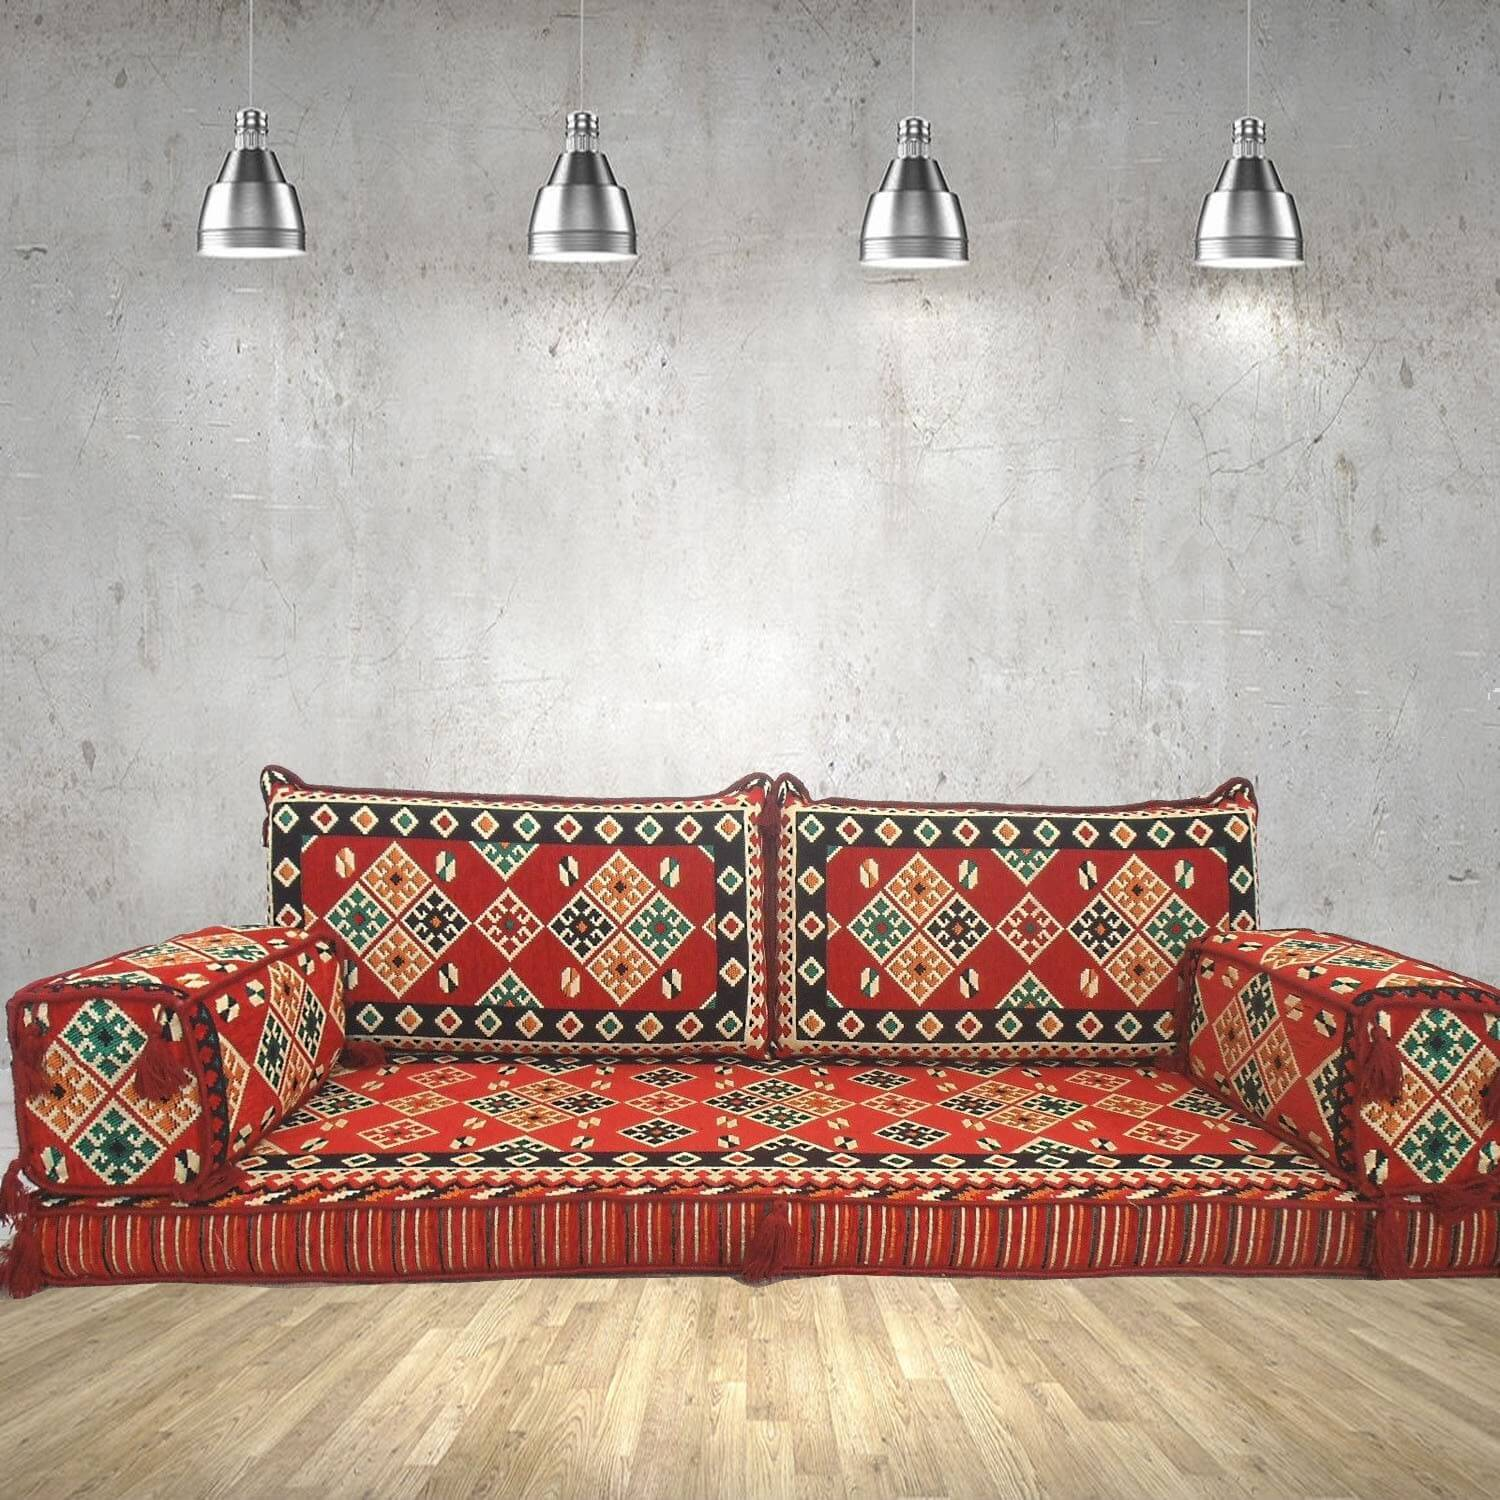 Floor sofa with double back pillows - SHI_FS240